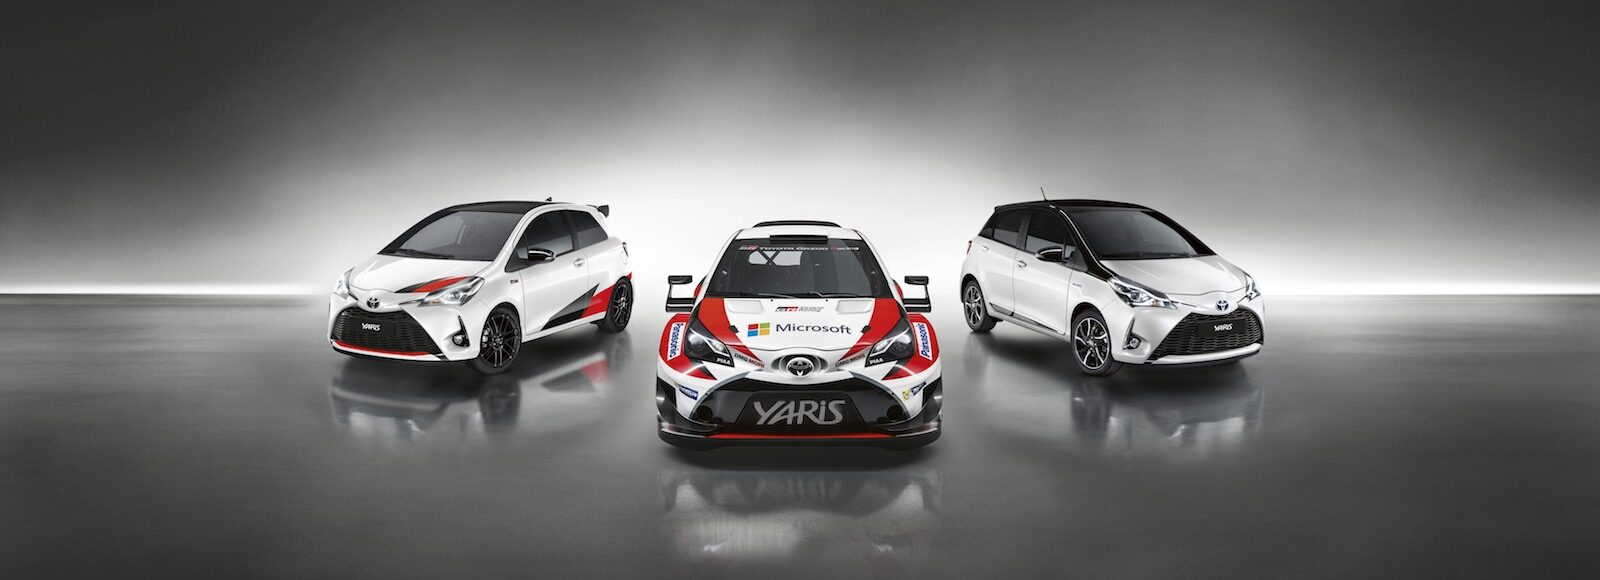 three toyota yaris